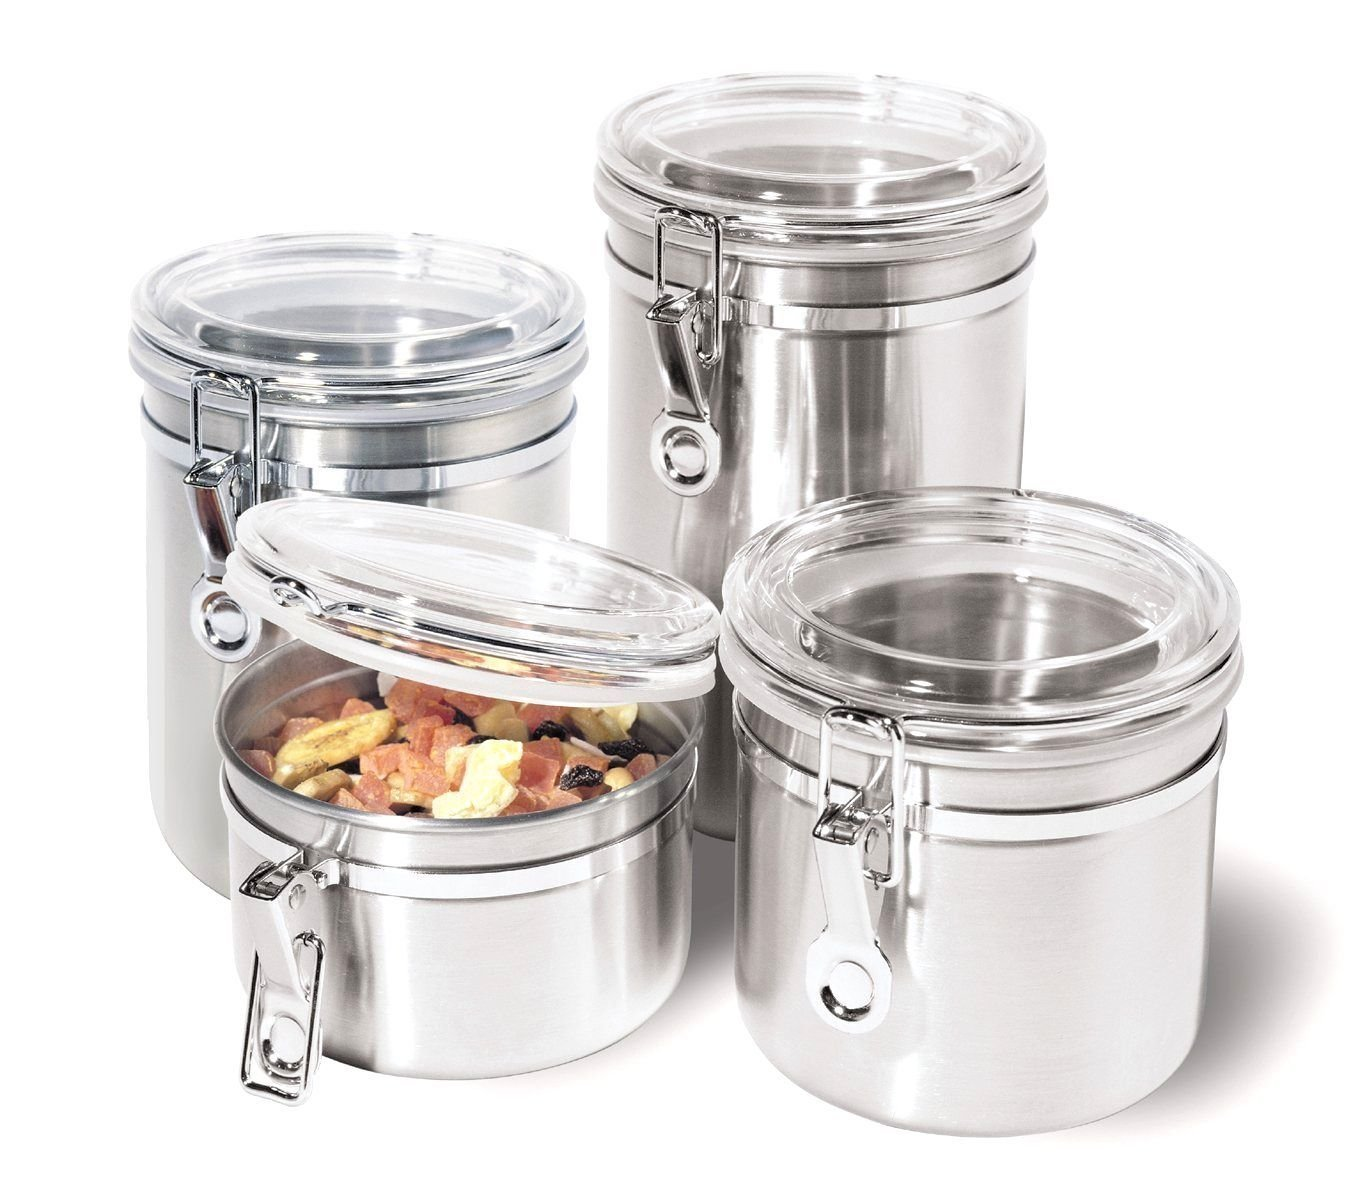 dingdangbell 4 Pcs Stainless Steel Canister Set with Airtight Acrylic Lid Kitchen Stainless Steel Spice Jars Set (S:550ML)